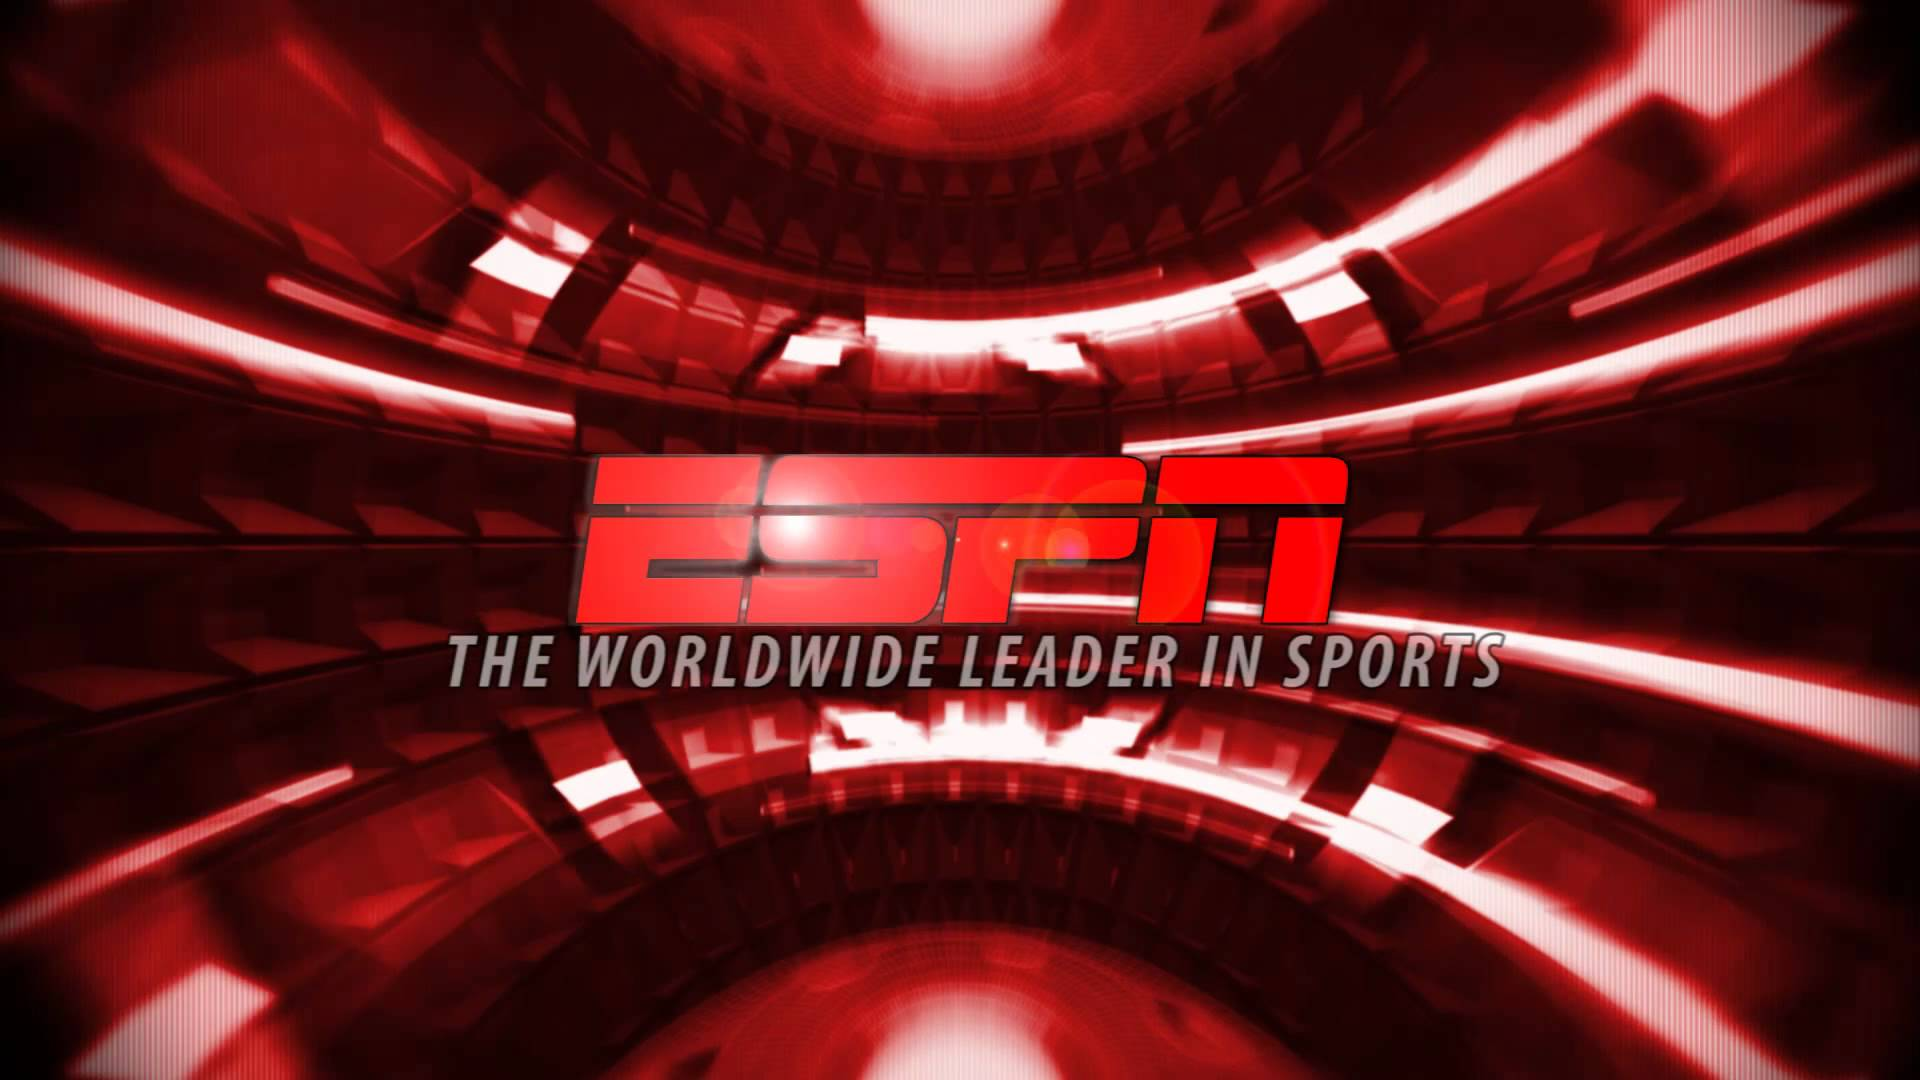 5 Ways To Watch Espn Online Without Cable